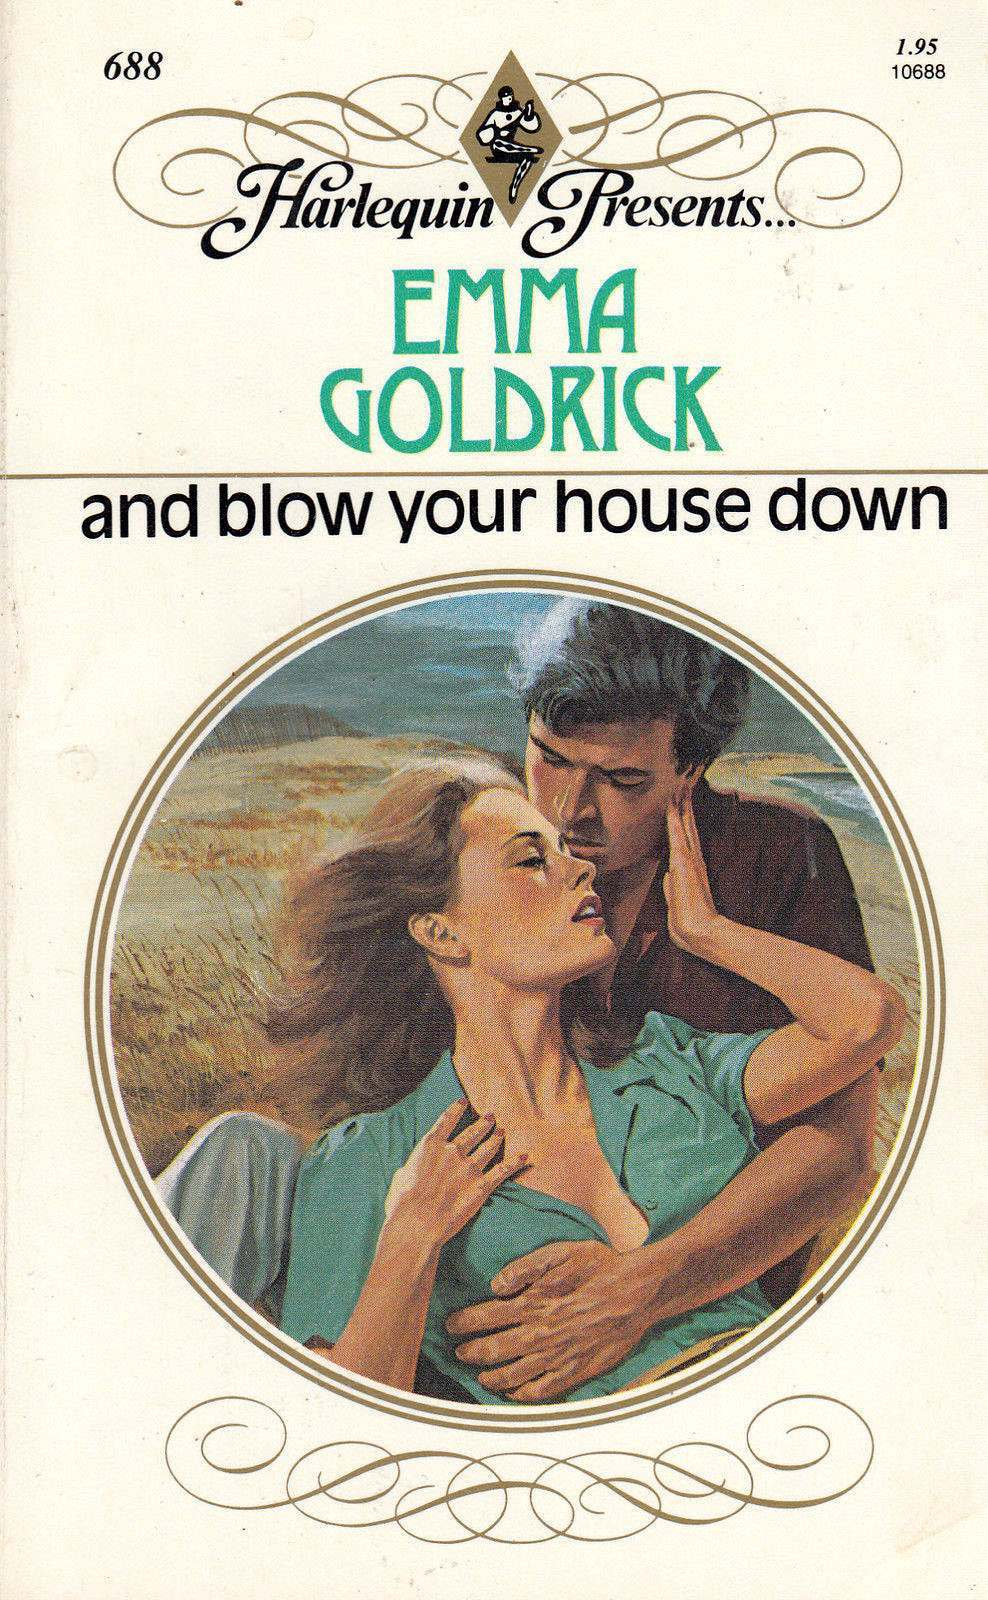 And Blow Your House Down - by Emma Goldrick - Harlequin Presents - # 688 - 1984